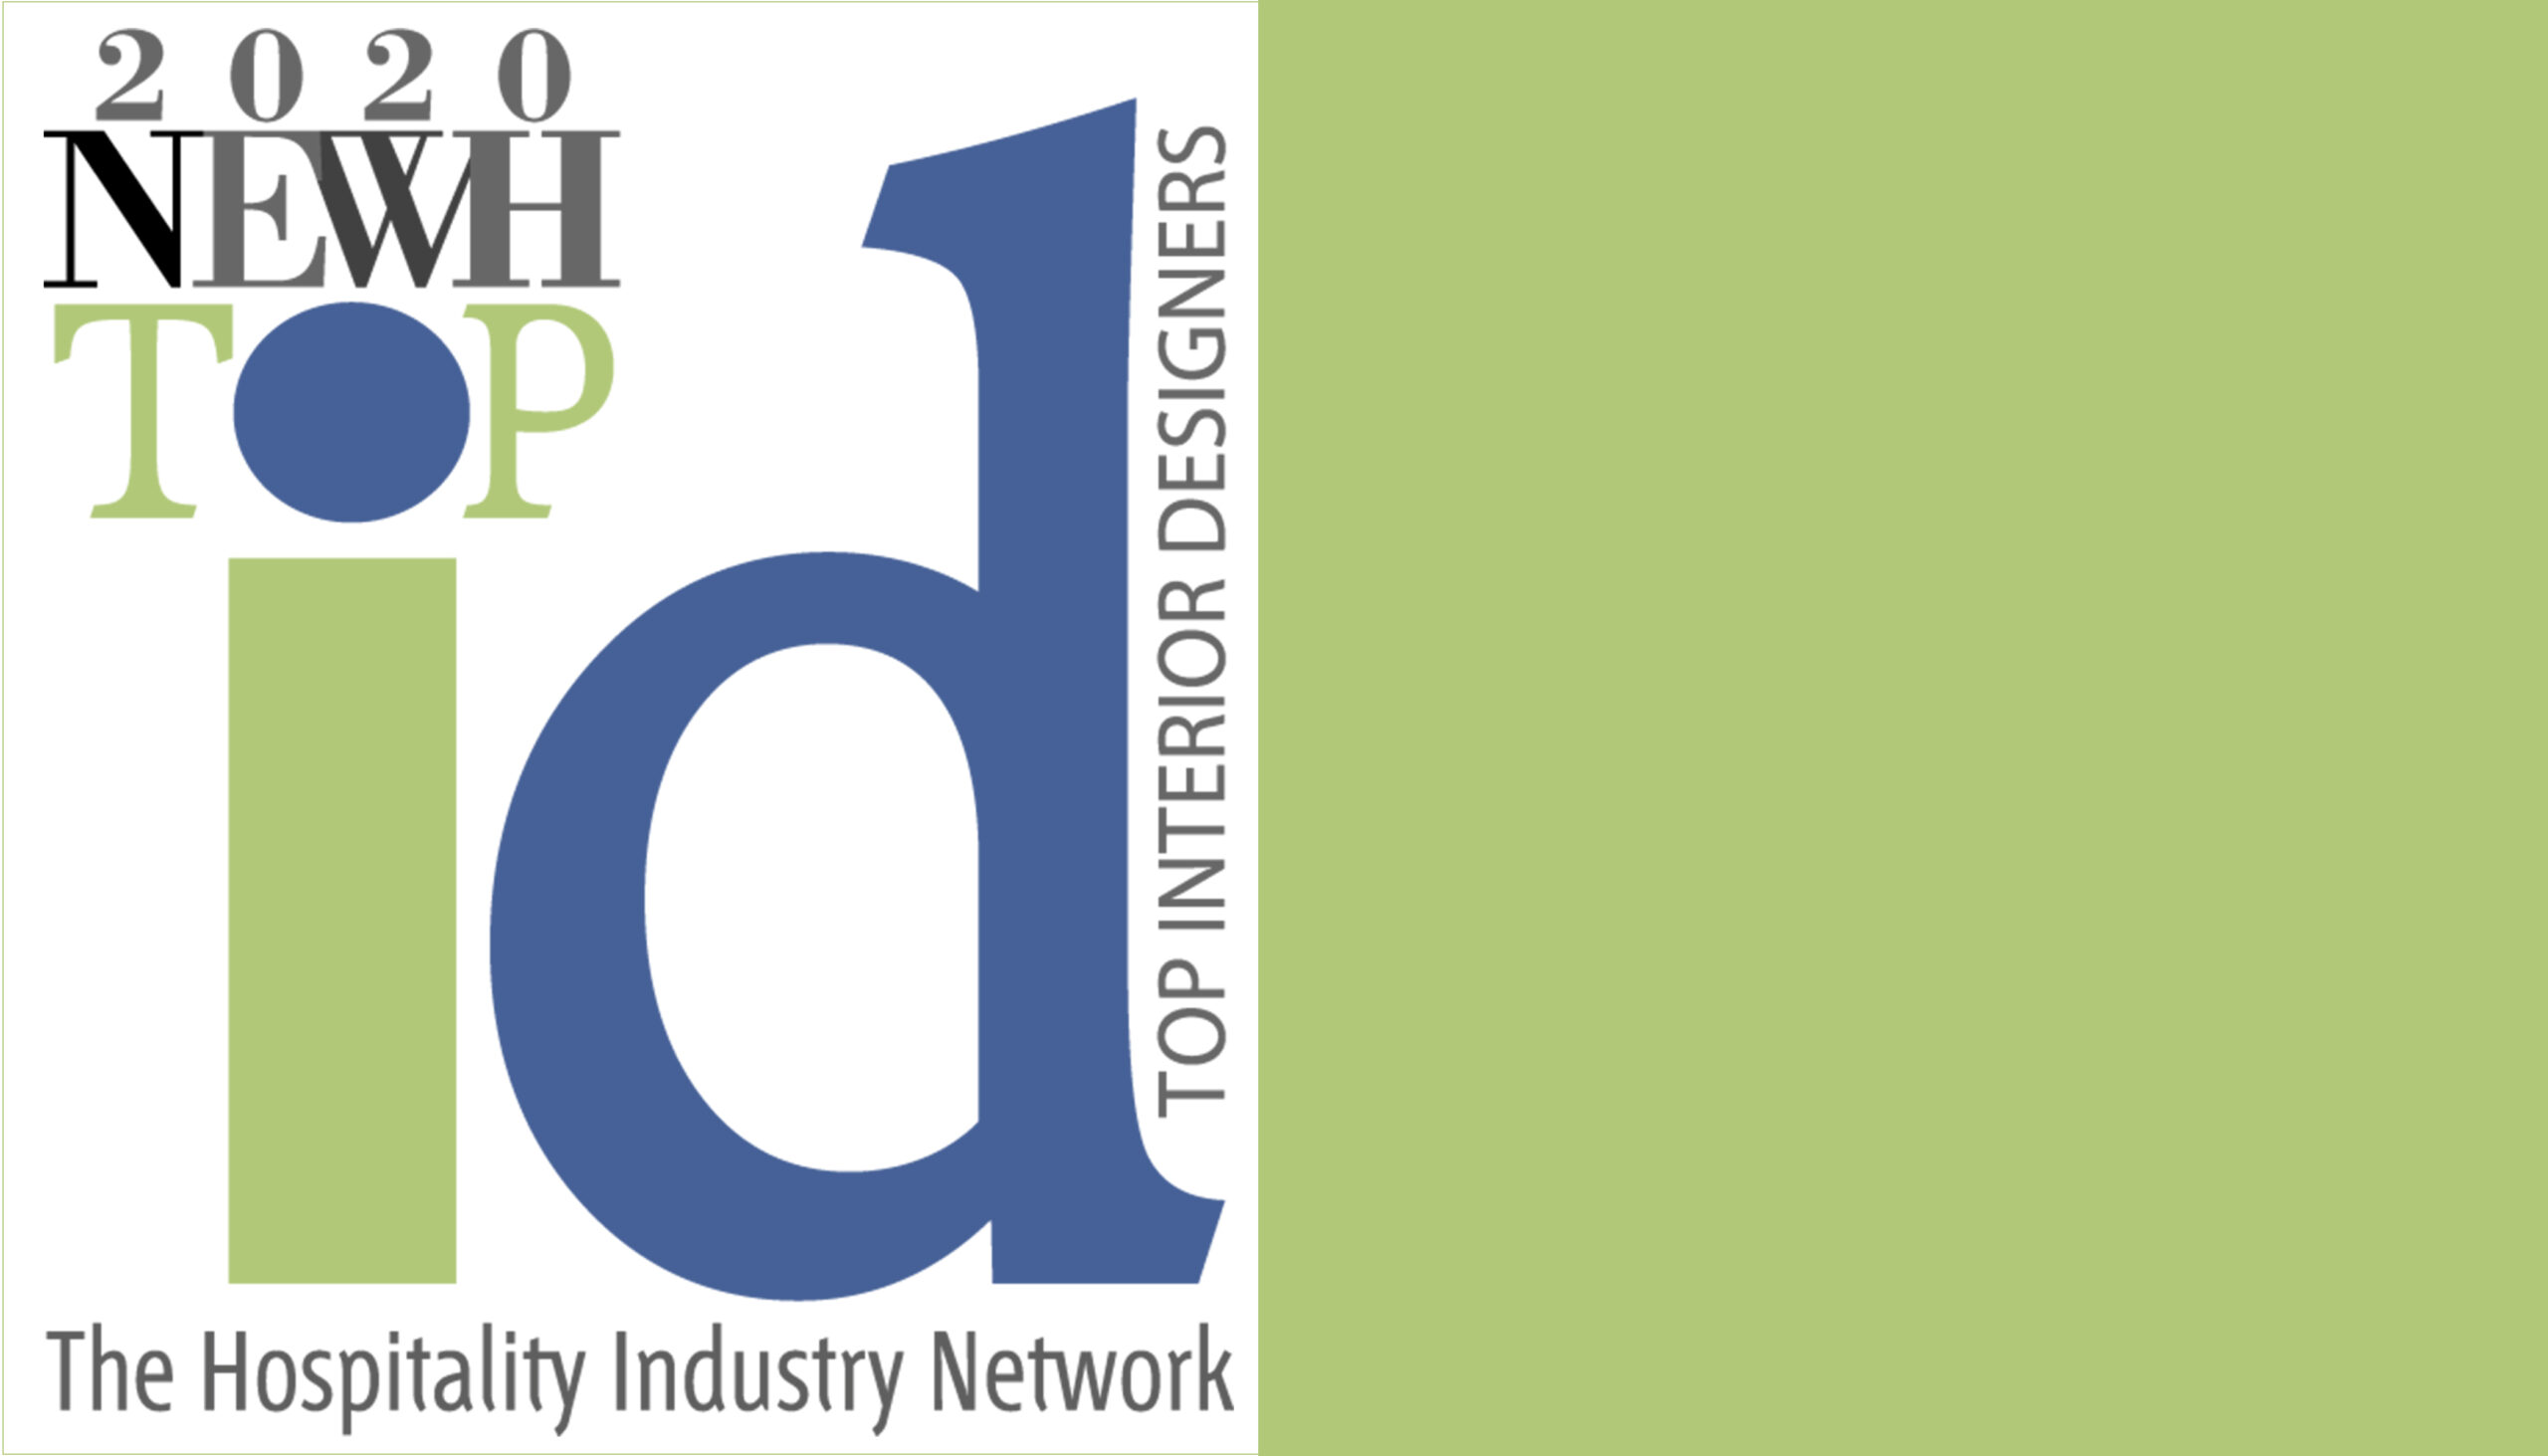 L2 Studios Awarded TopID 2020 by NEWH